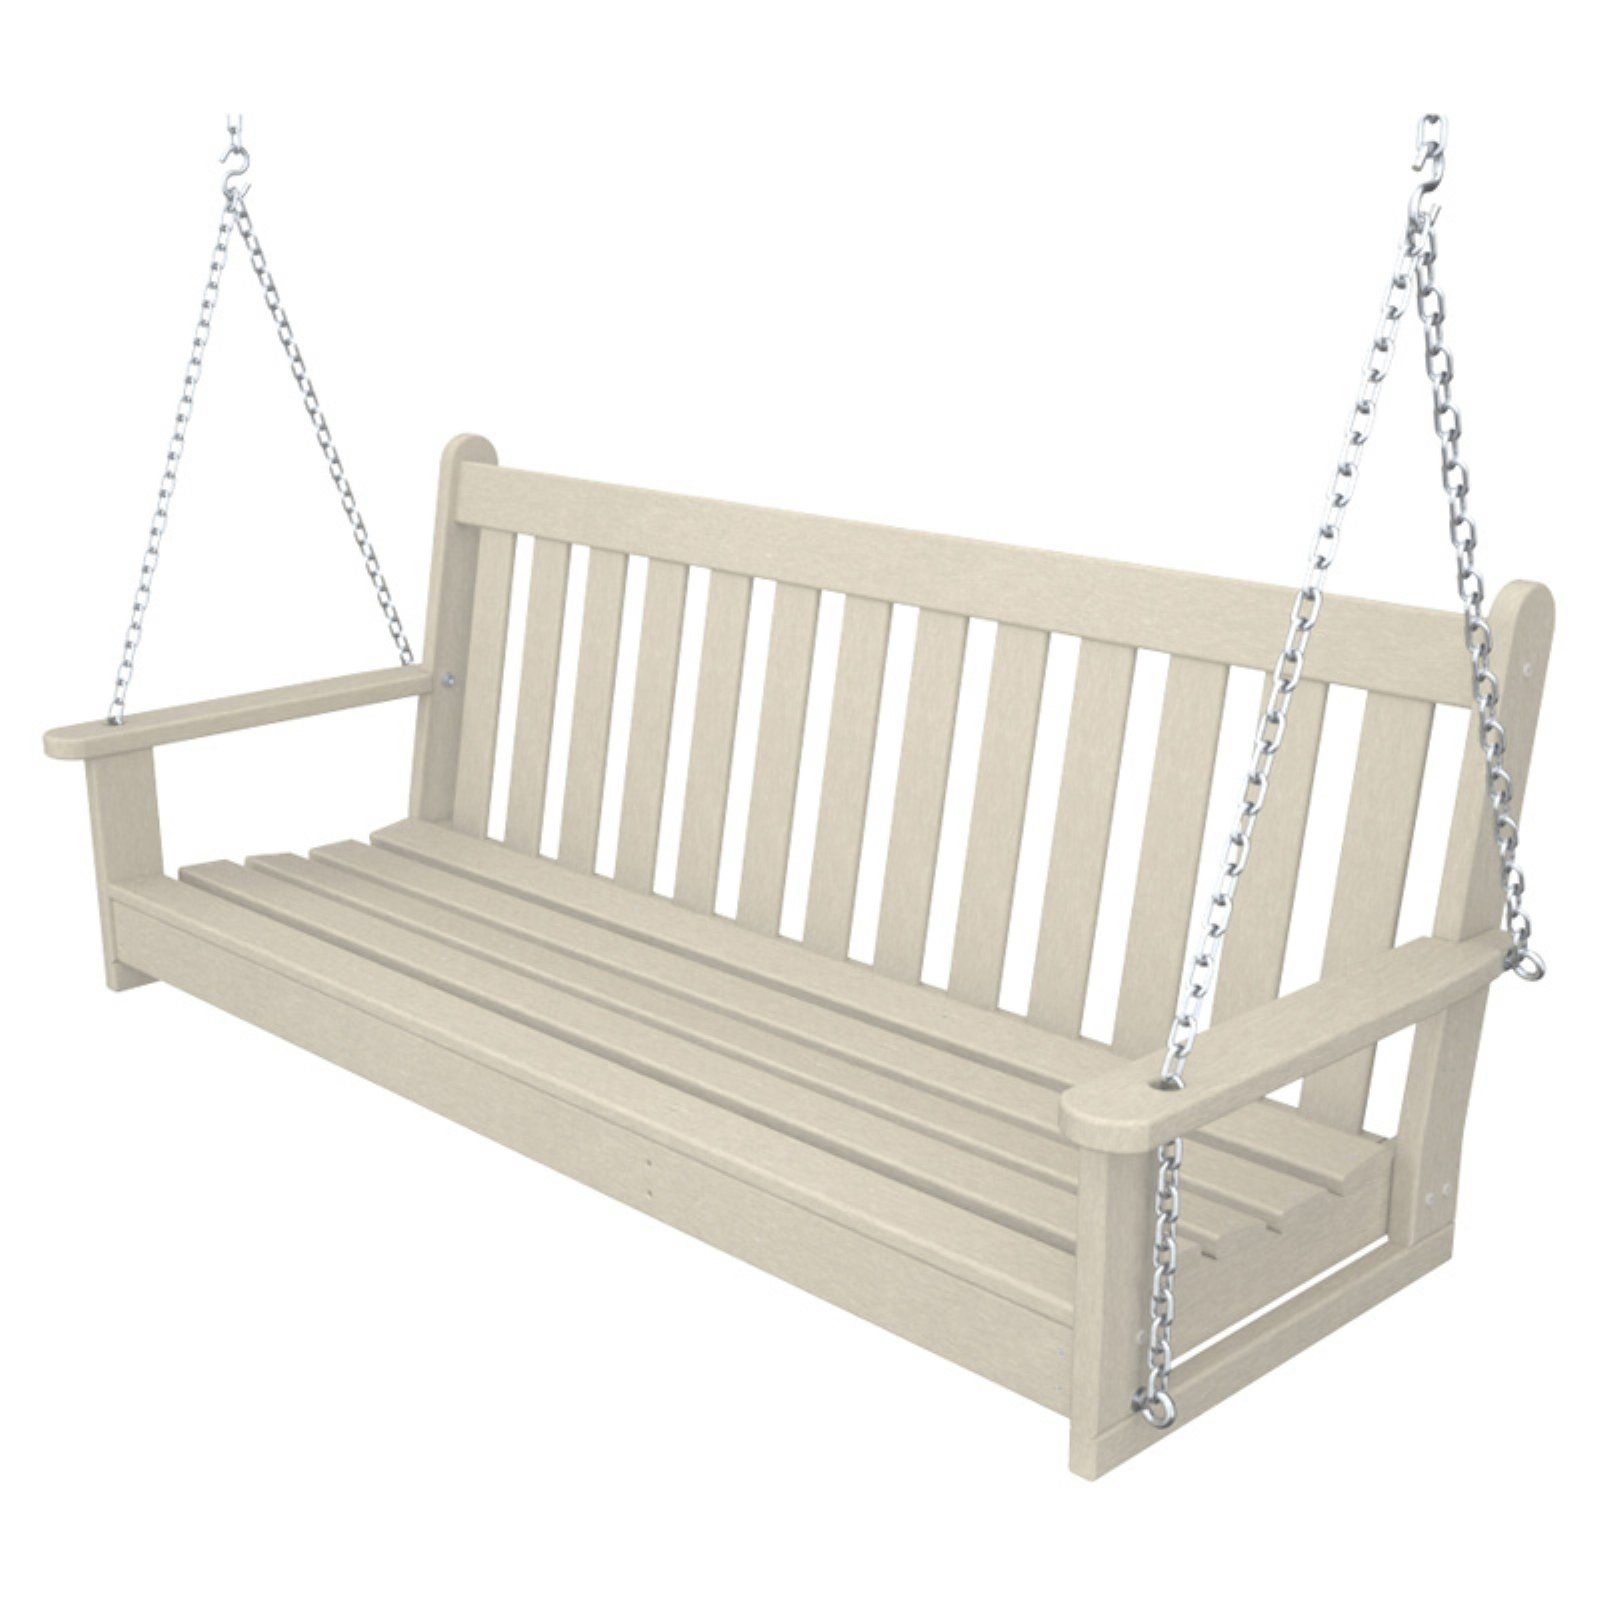 Polywood Vineyard Recycled Plastic 5 Ft Porch Swing Porch Swing Polywood Hanging Porch Swing